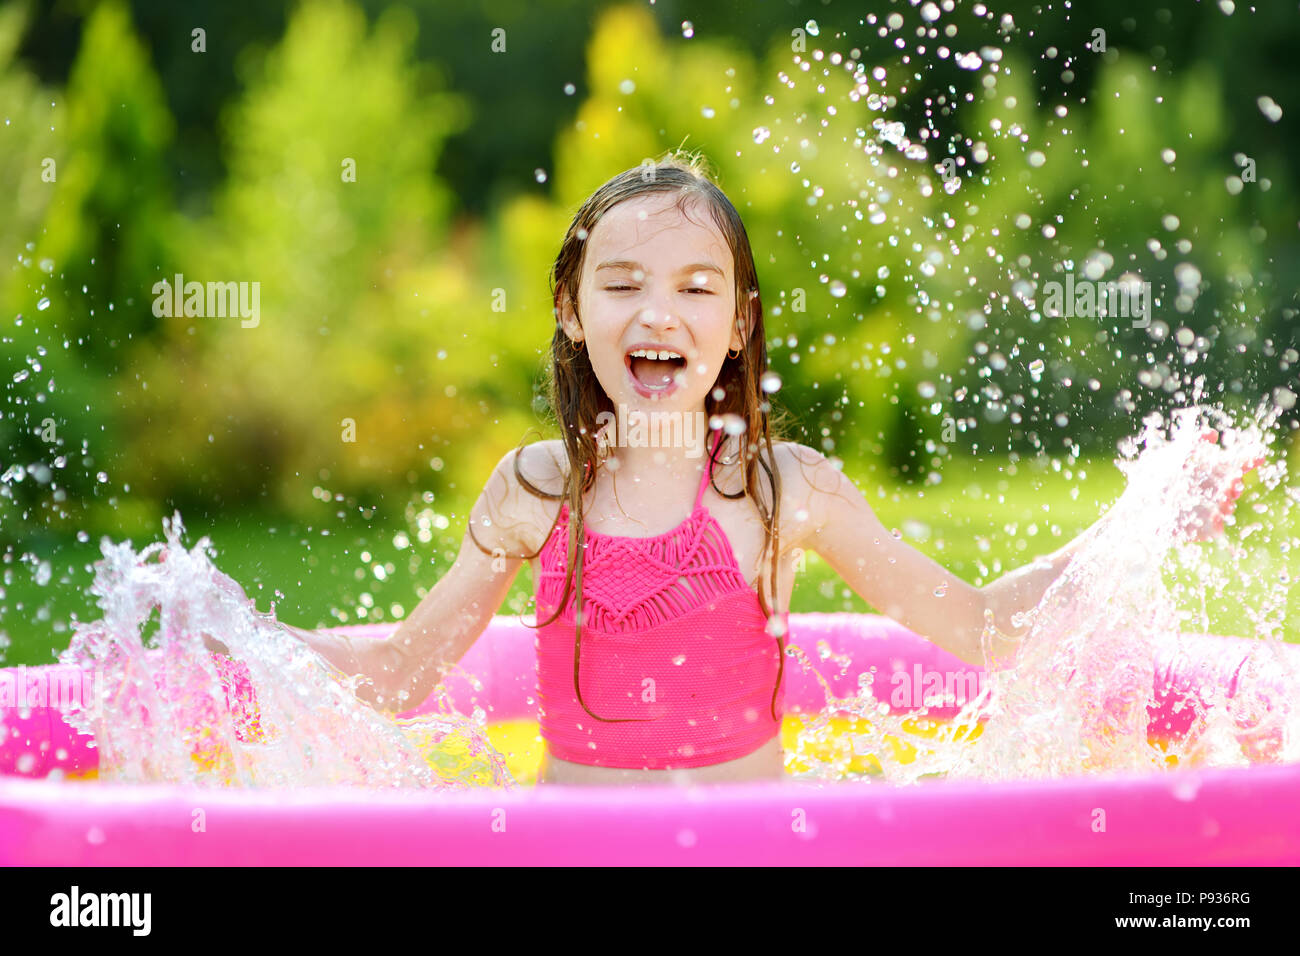 Adorable little girl playing in inflatable baby pool. Happy kid